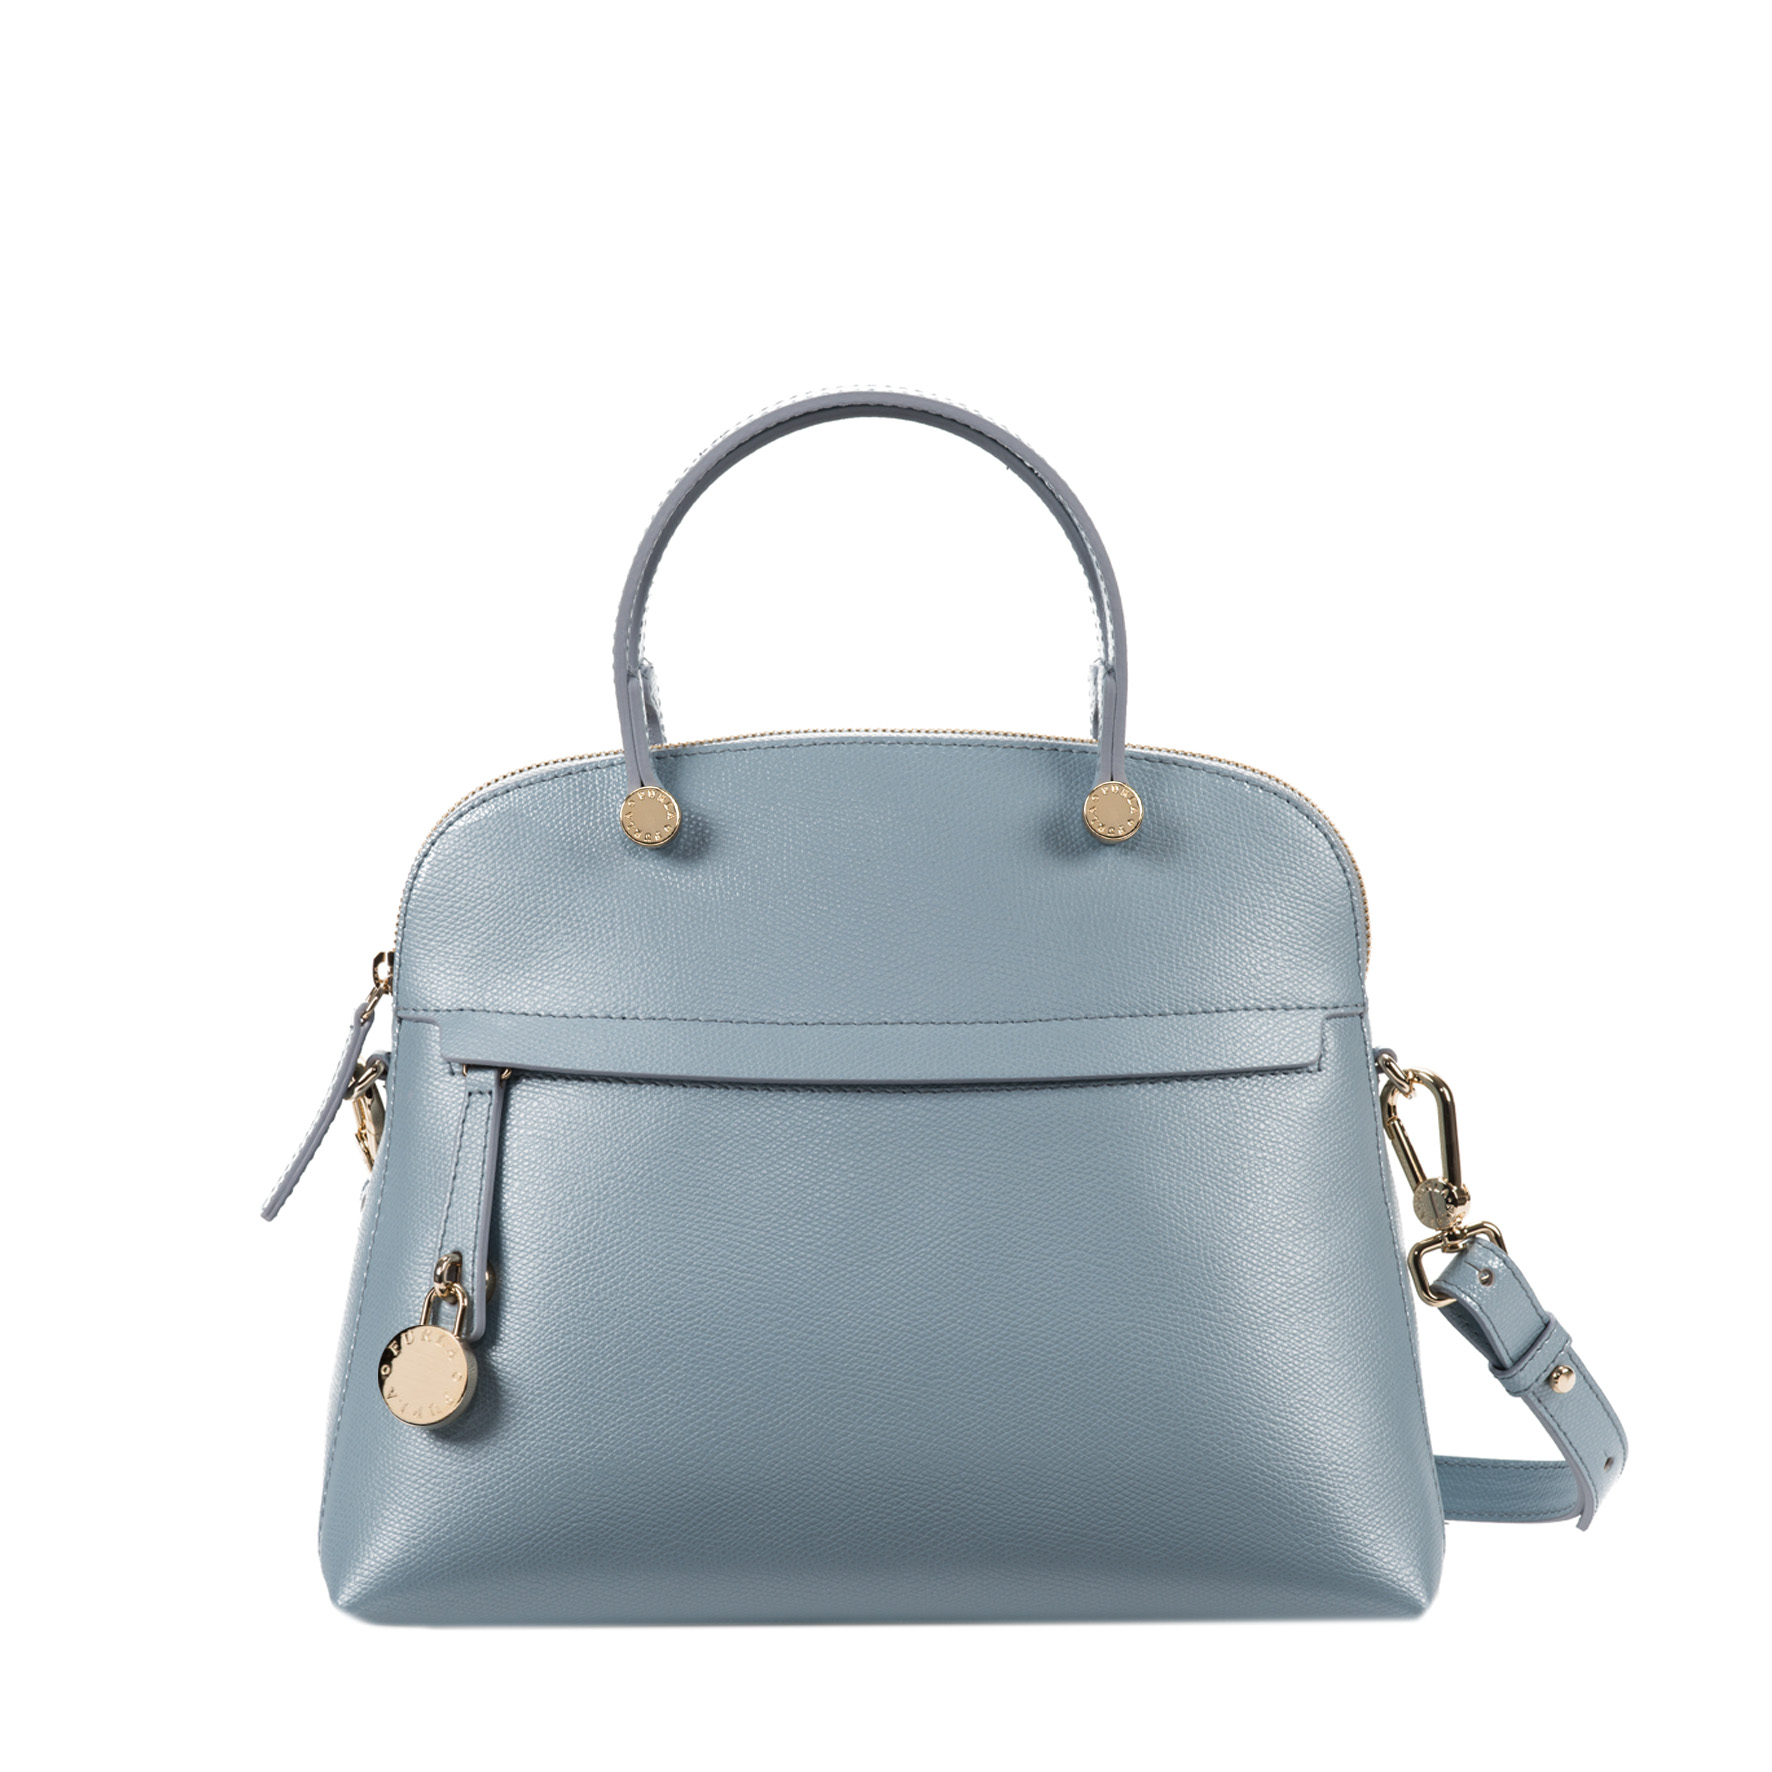 Furla Handtassen Winter 2015 : Furla unveils pre fall collection